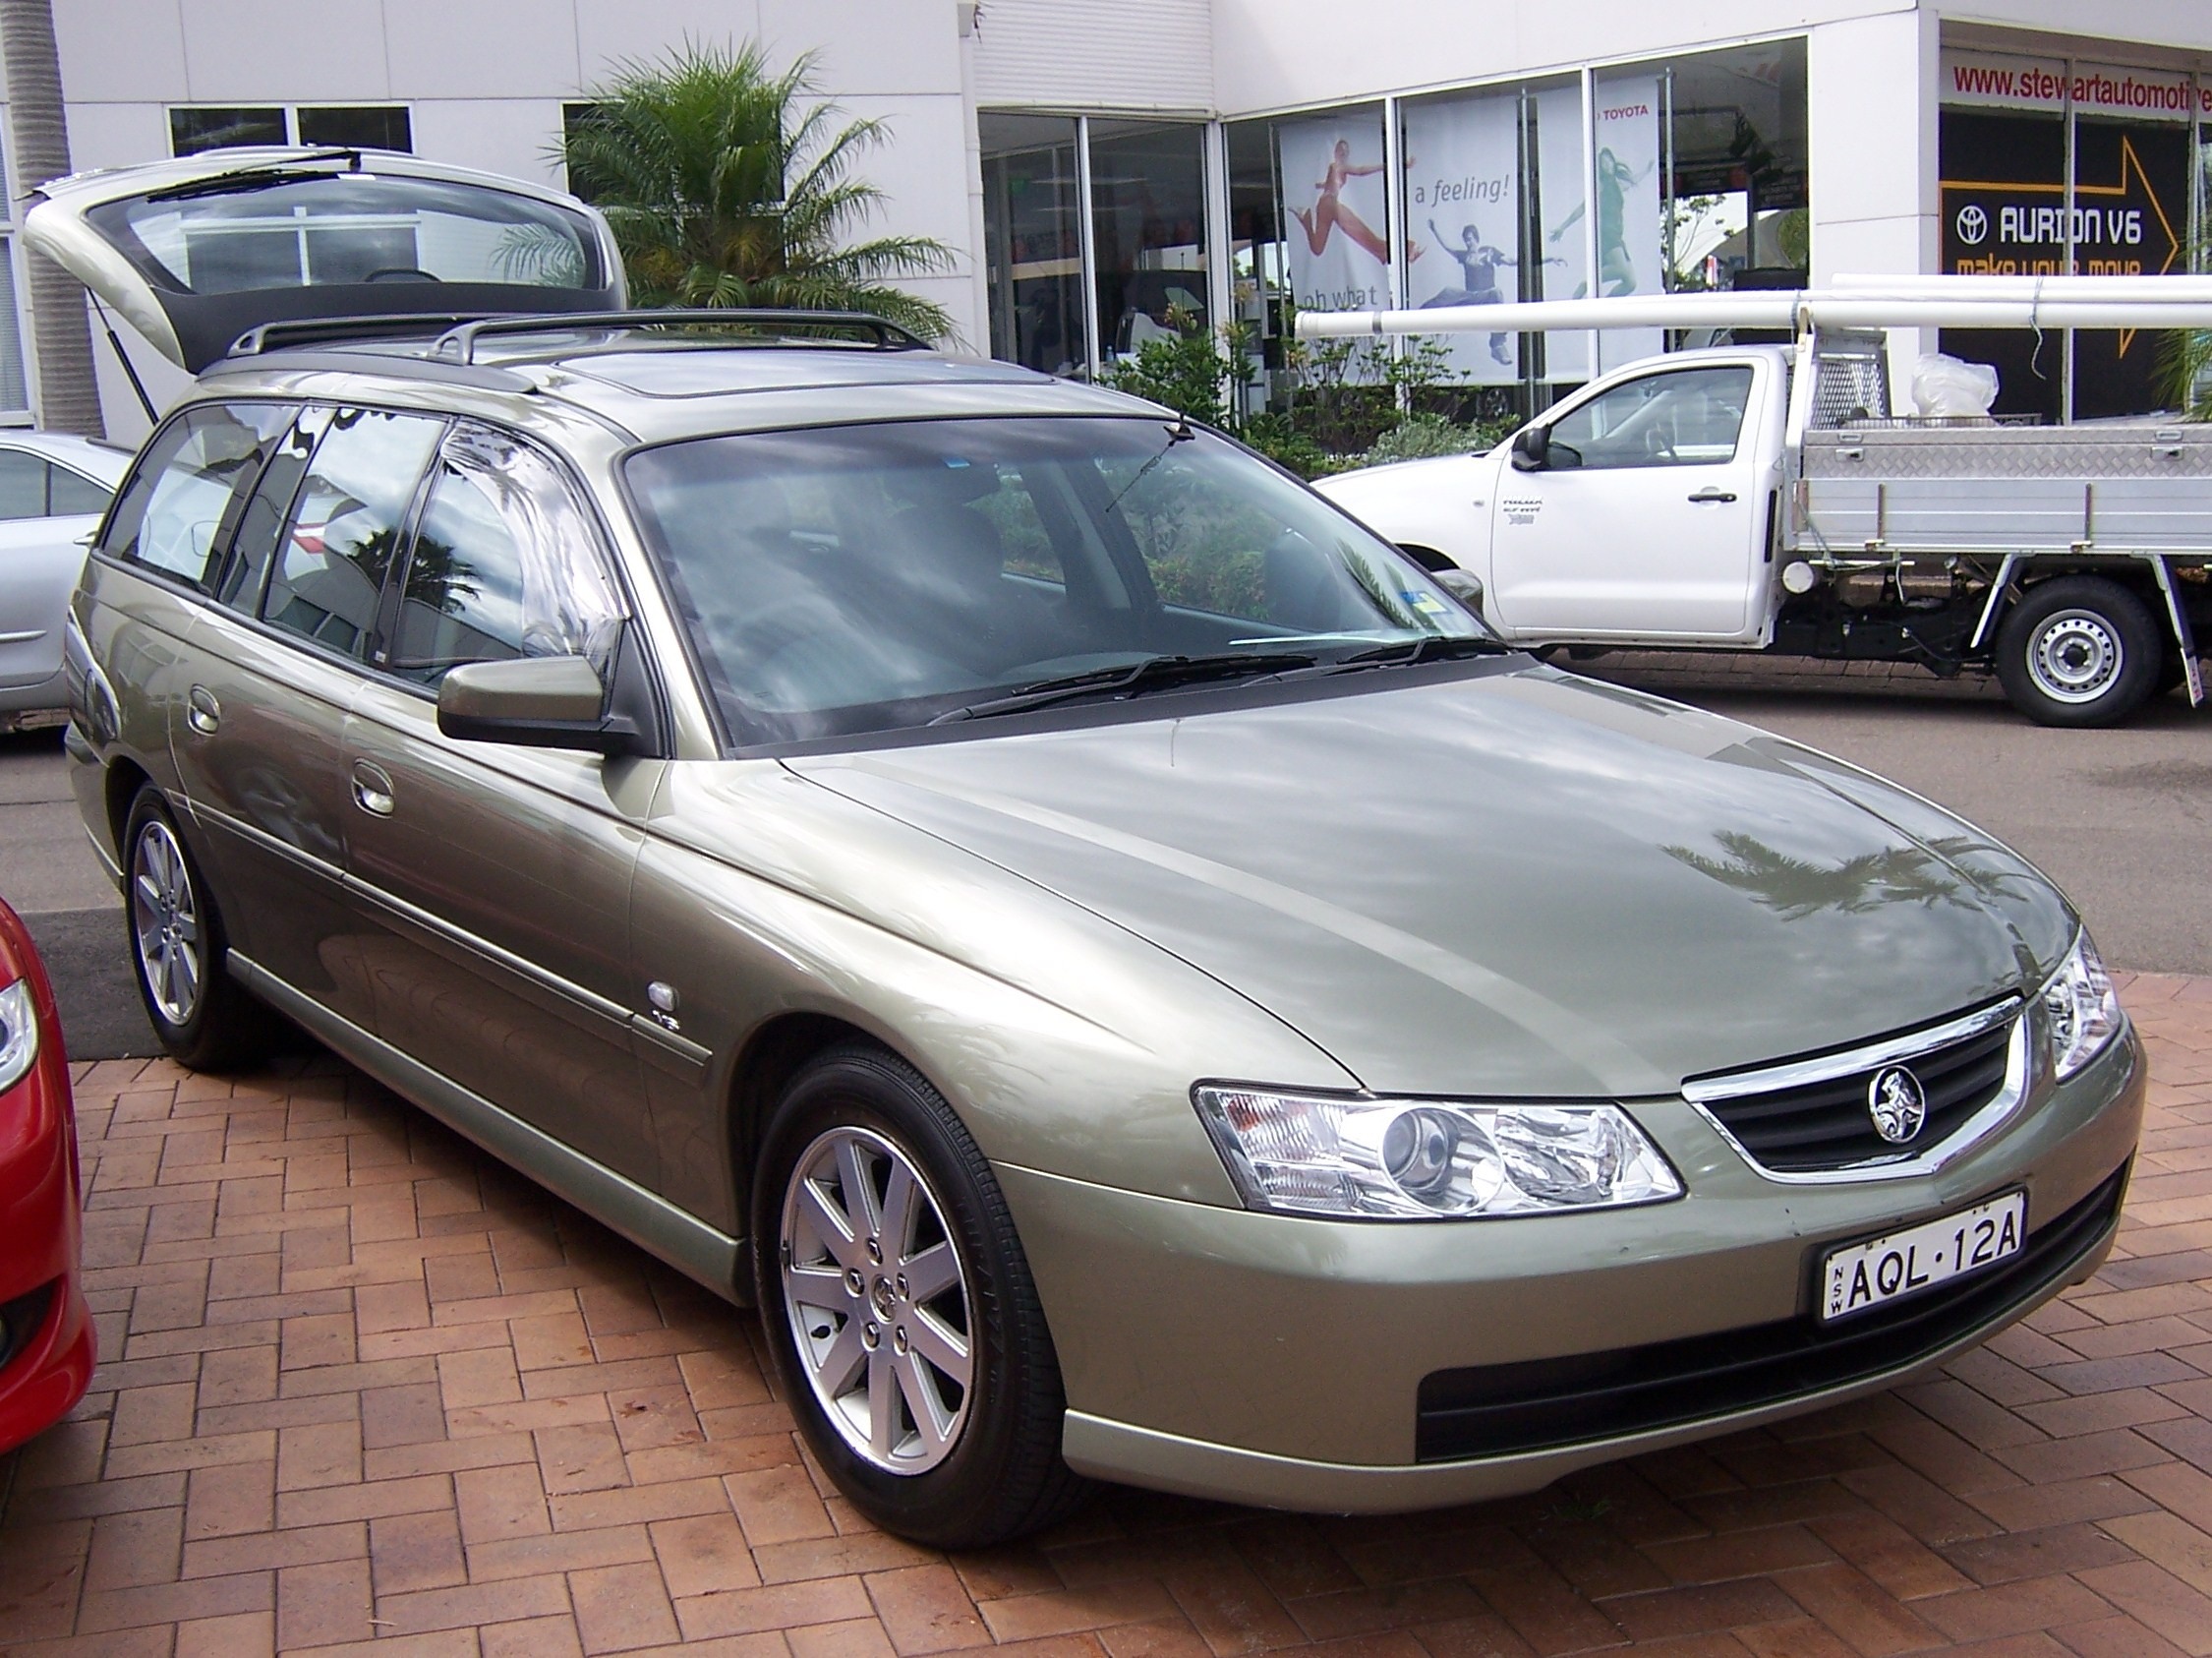 2003 Holden Berlina #6